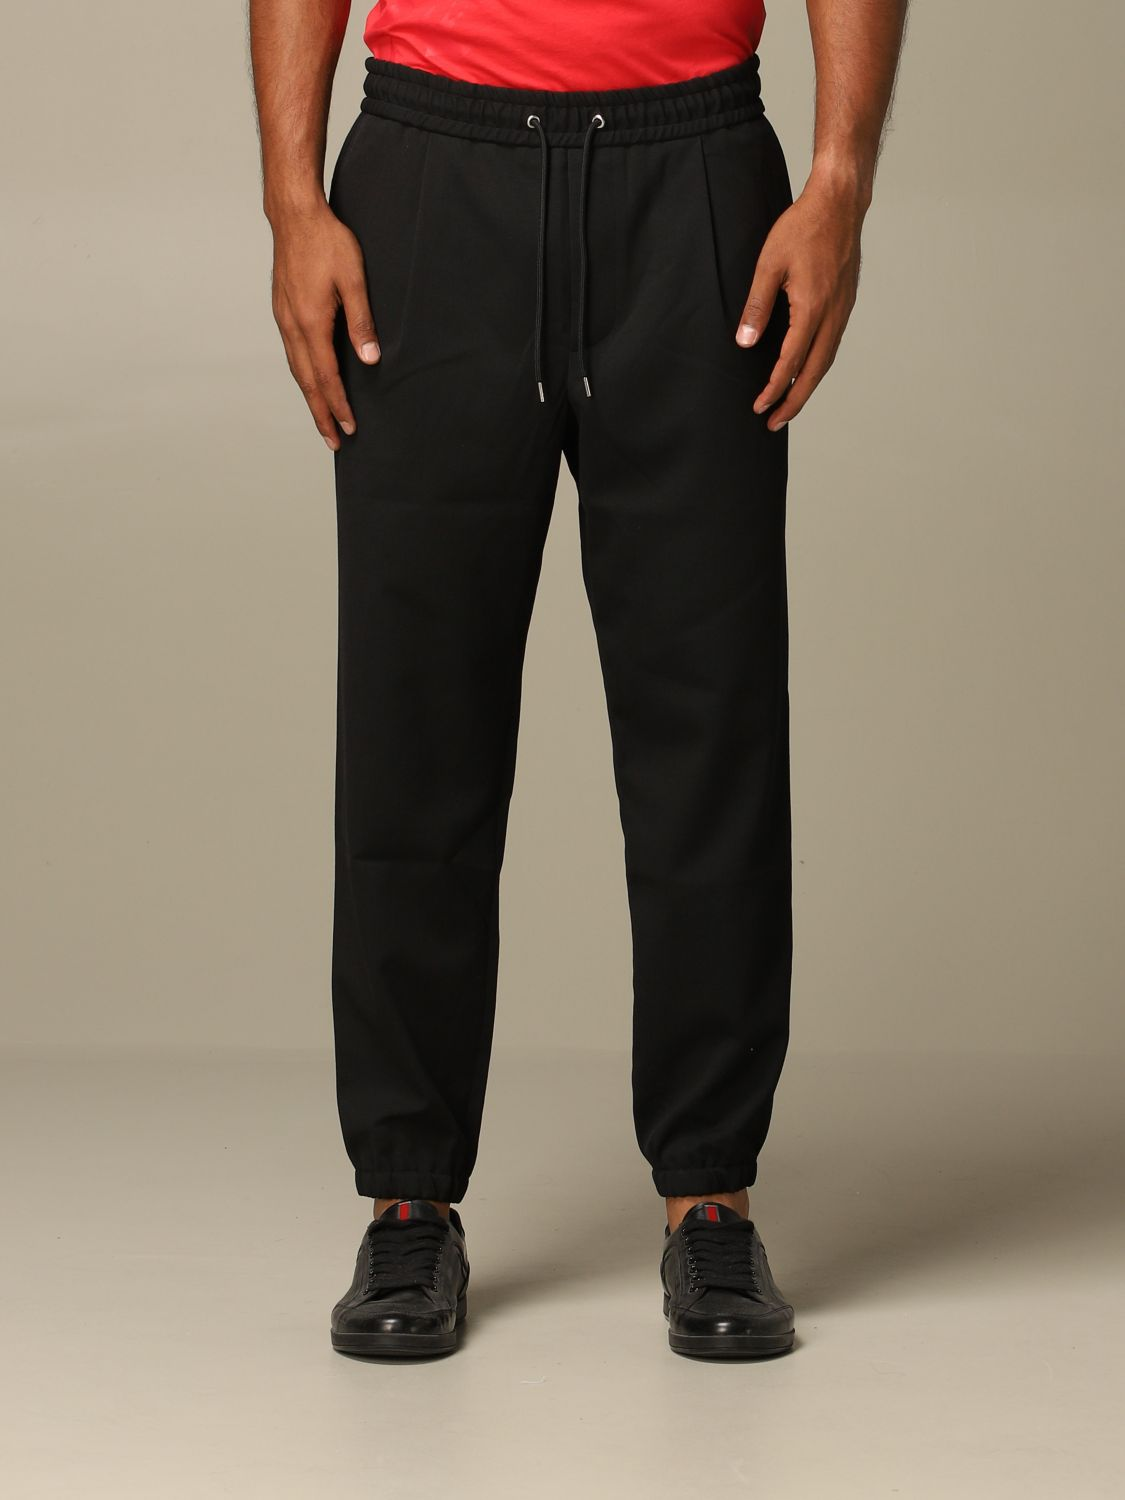 Pants Mcq Mcqueen: Mcq Mcqueen jogging trousers black 1